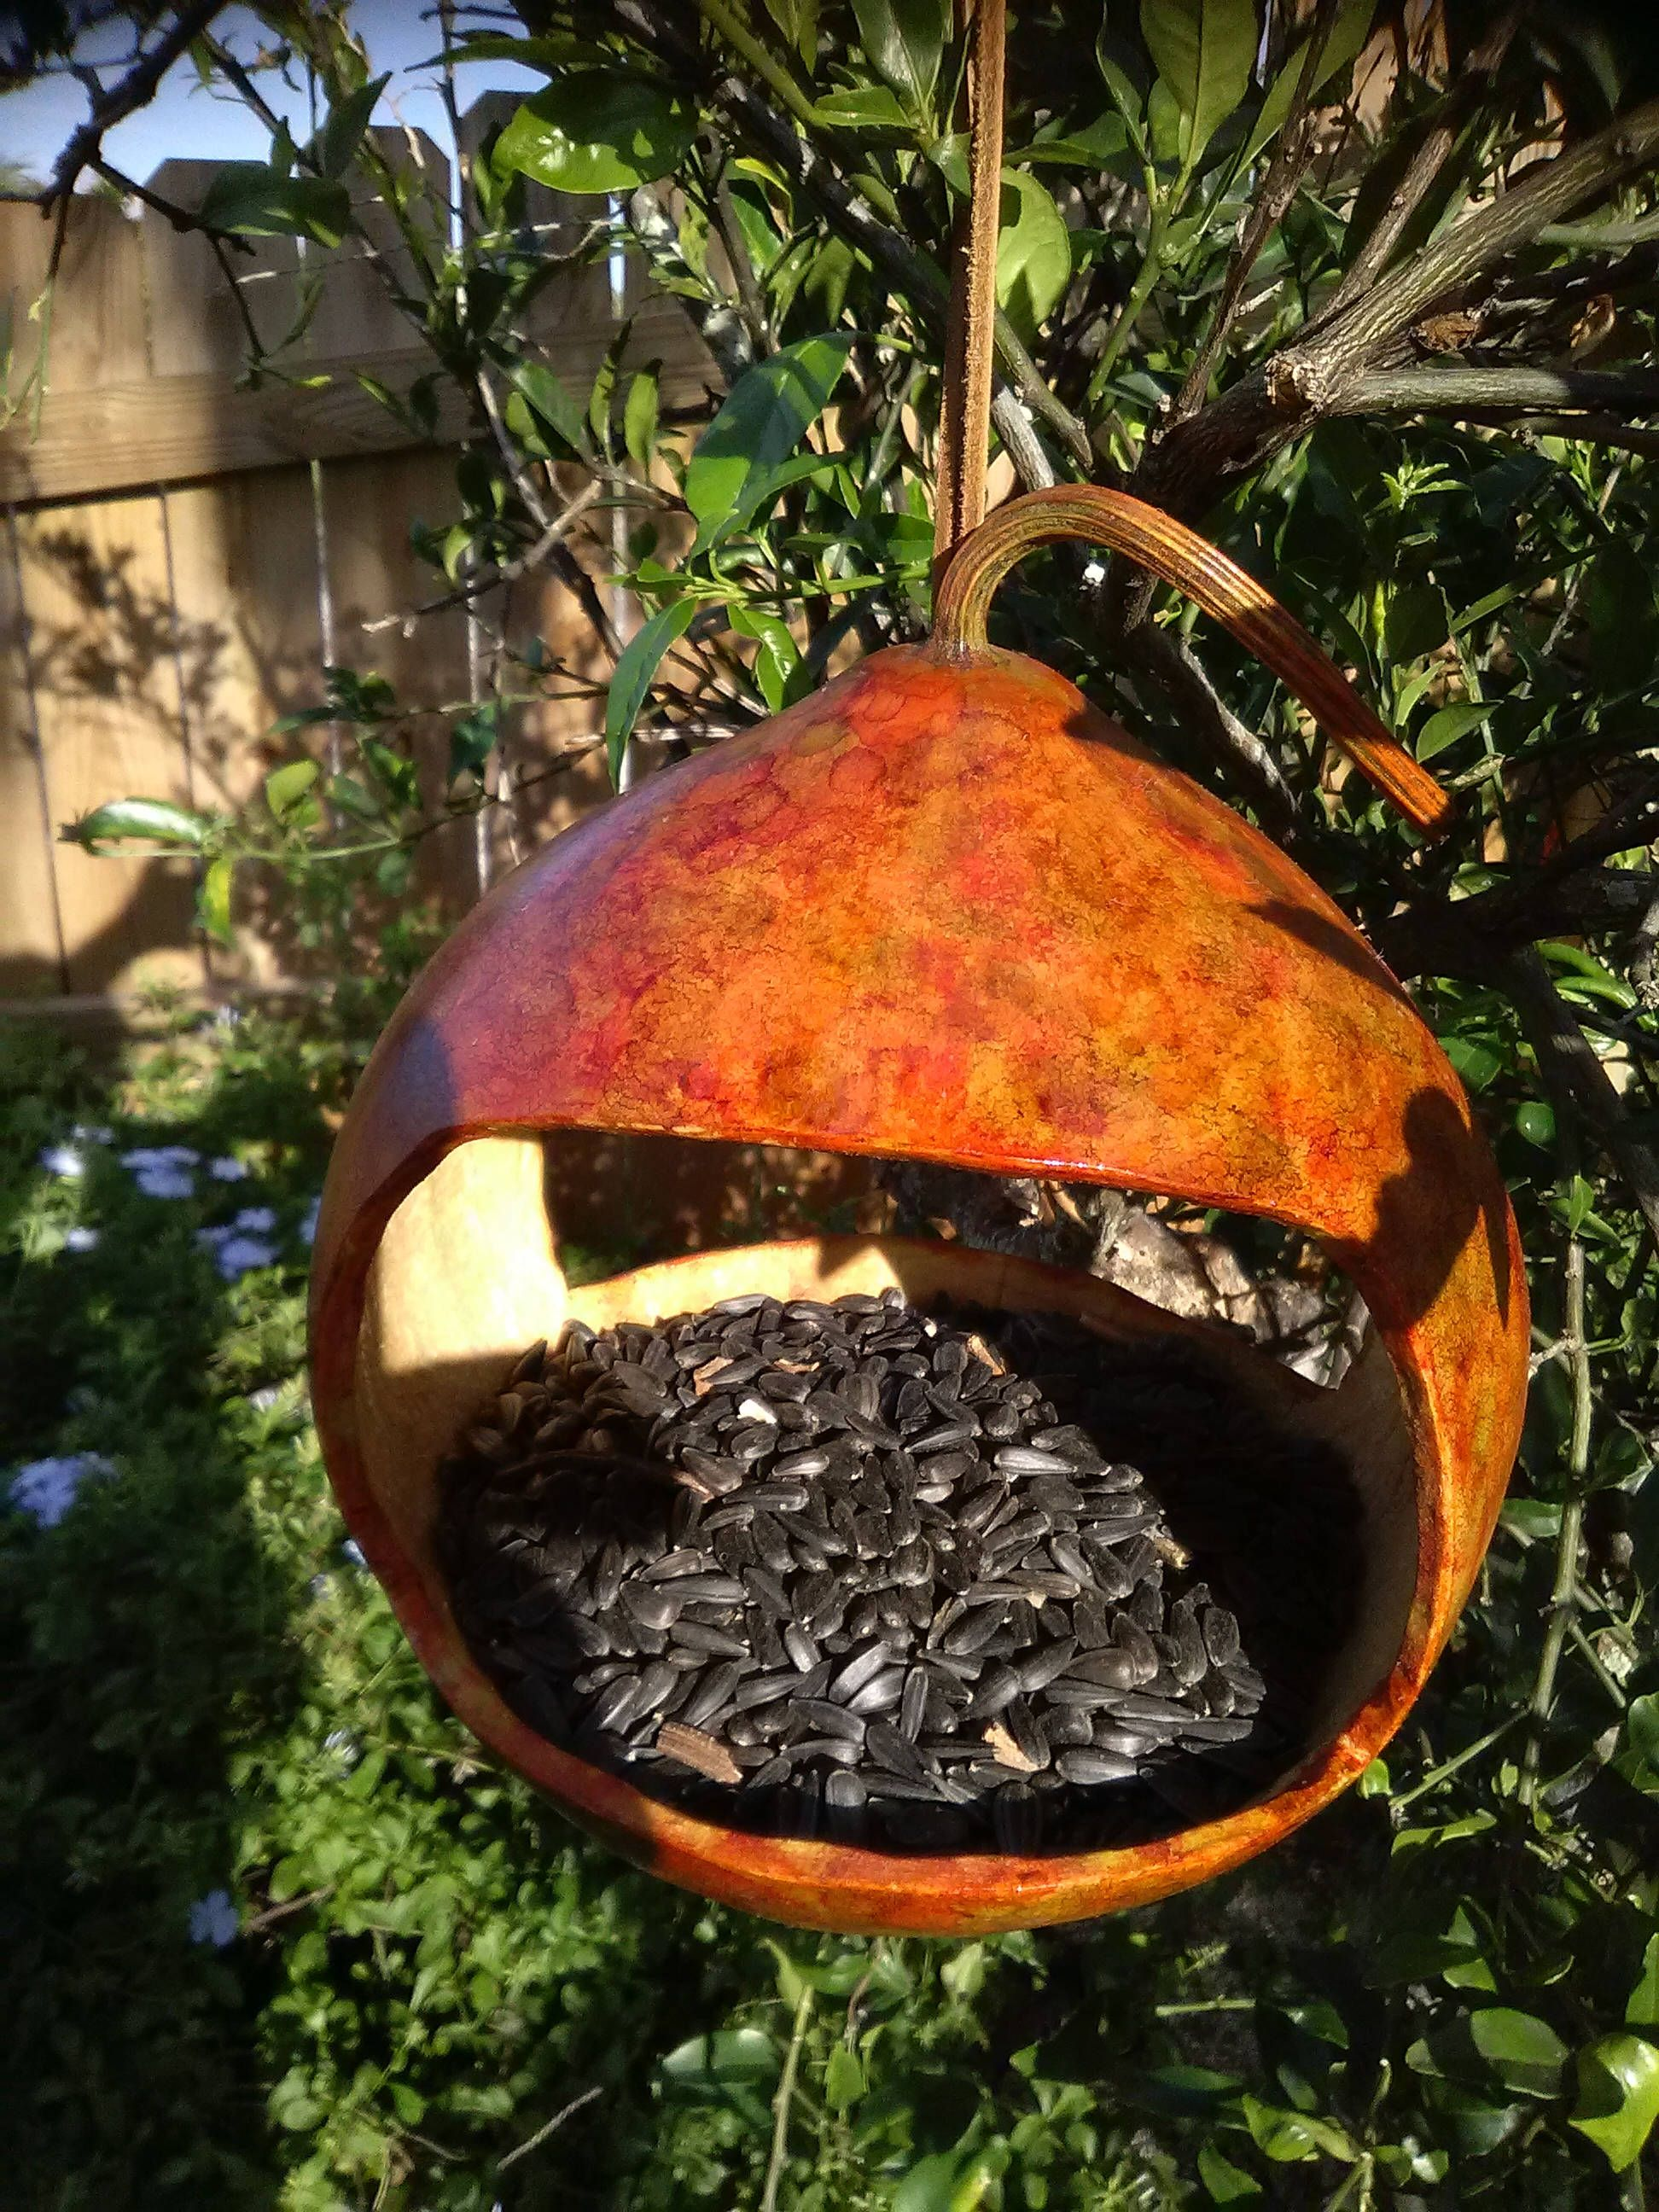 Gourd Birdfeeder, Fall Foliage Rustic colors, One of a Kind